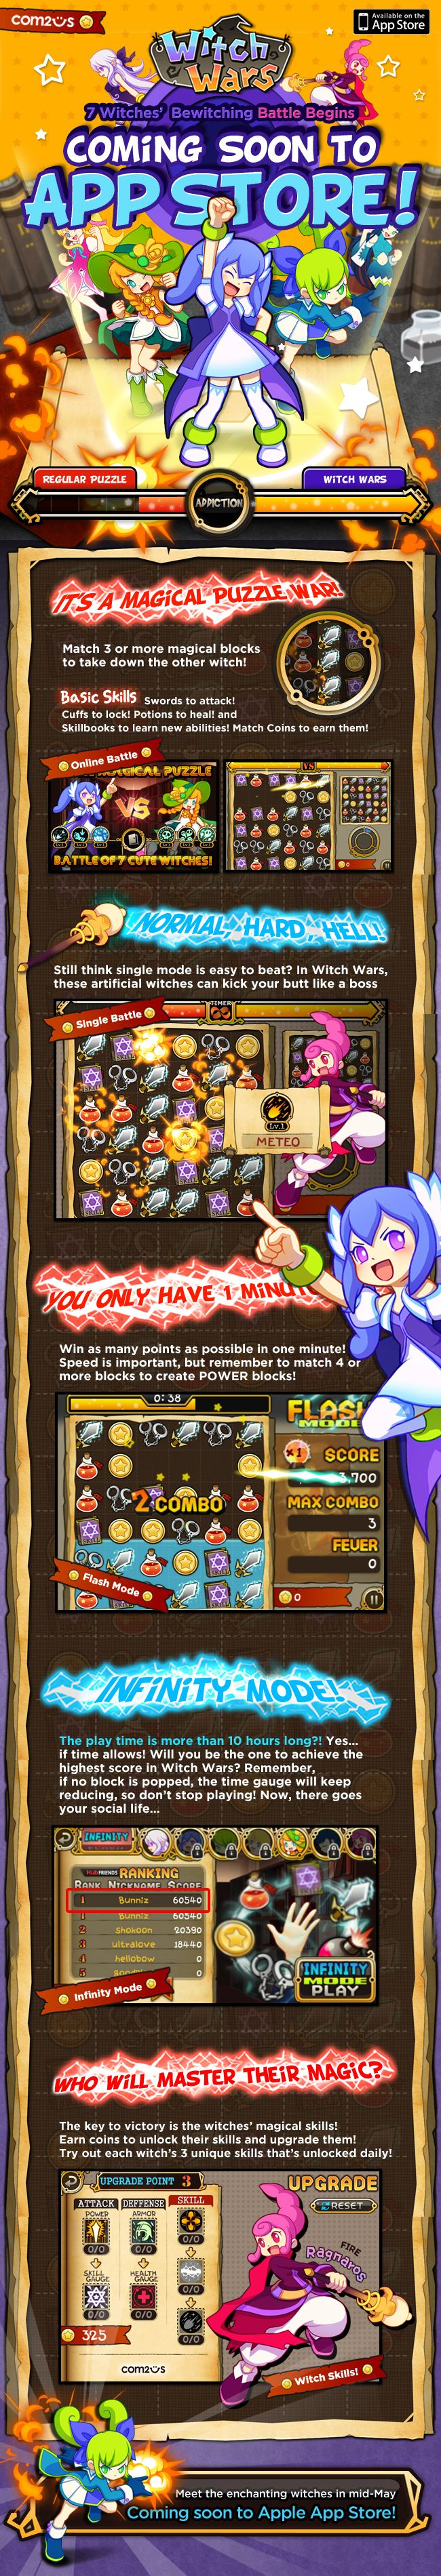 """Learn all about """"Witch Wars"""" - Com2uS - iPhone Games, iPod Touch Games, Android Games 